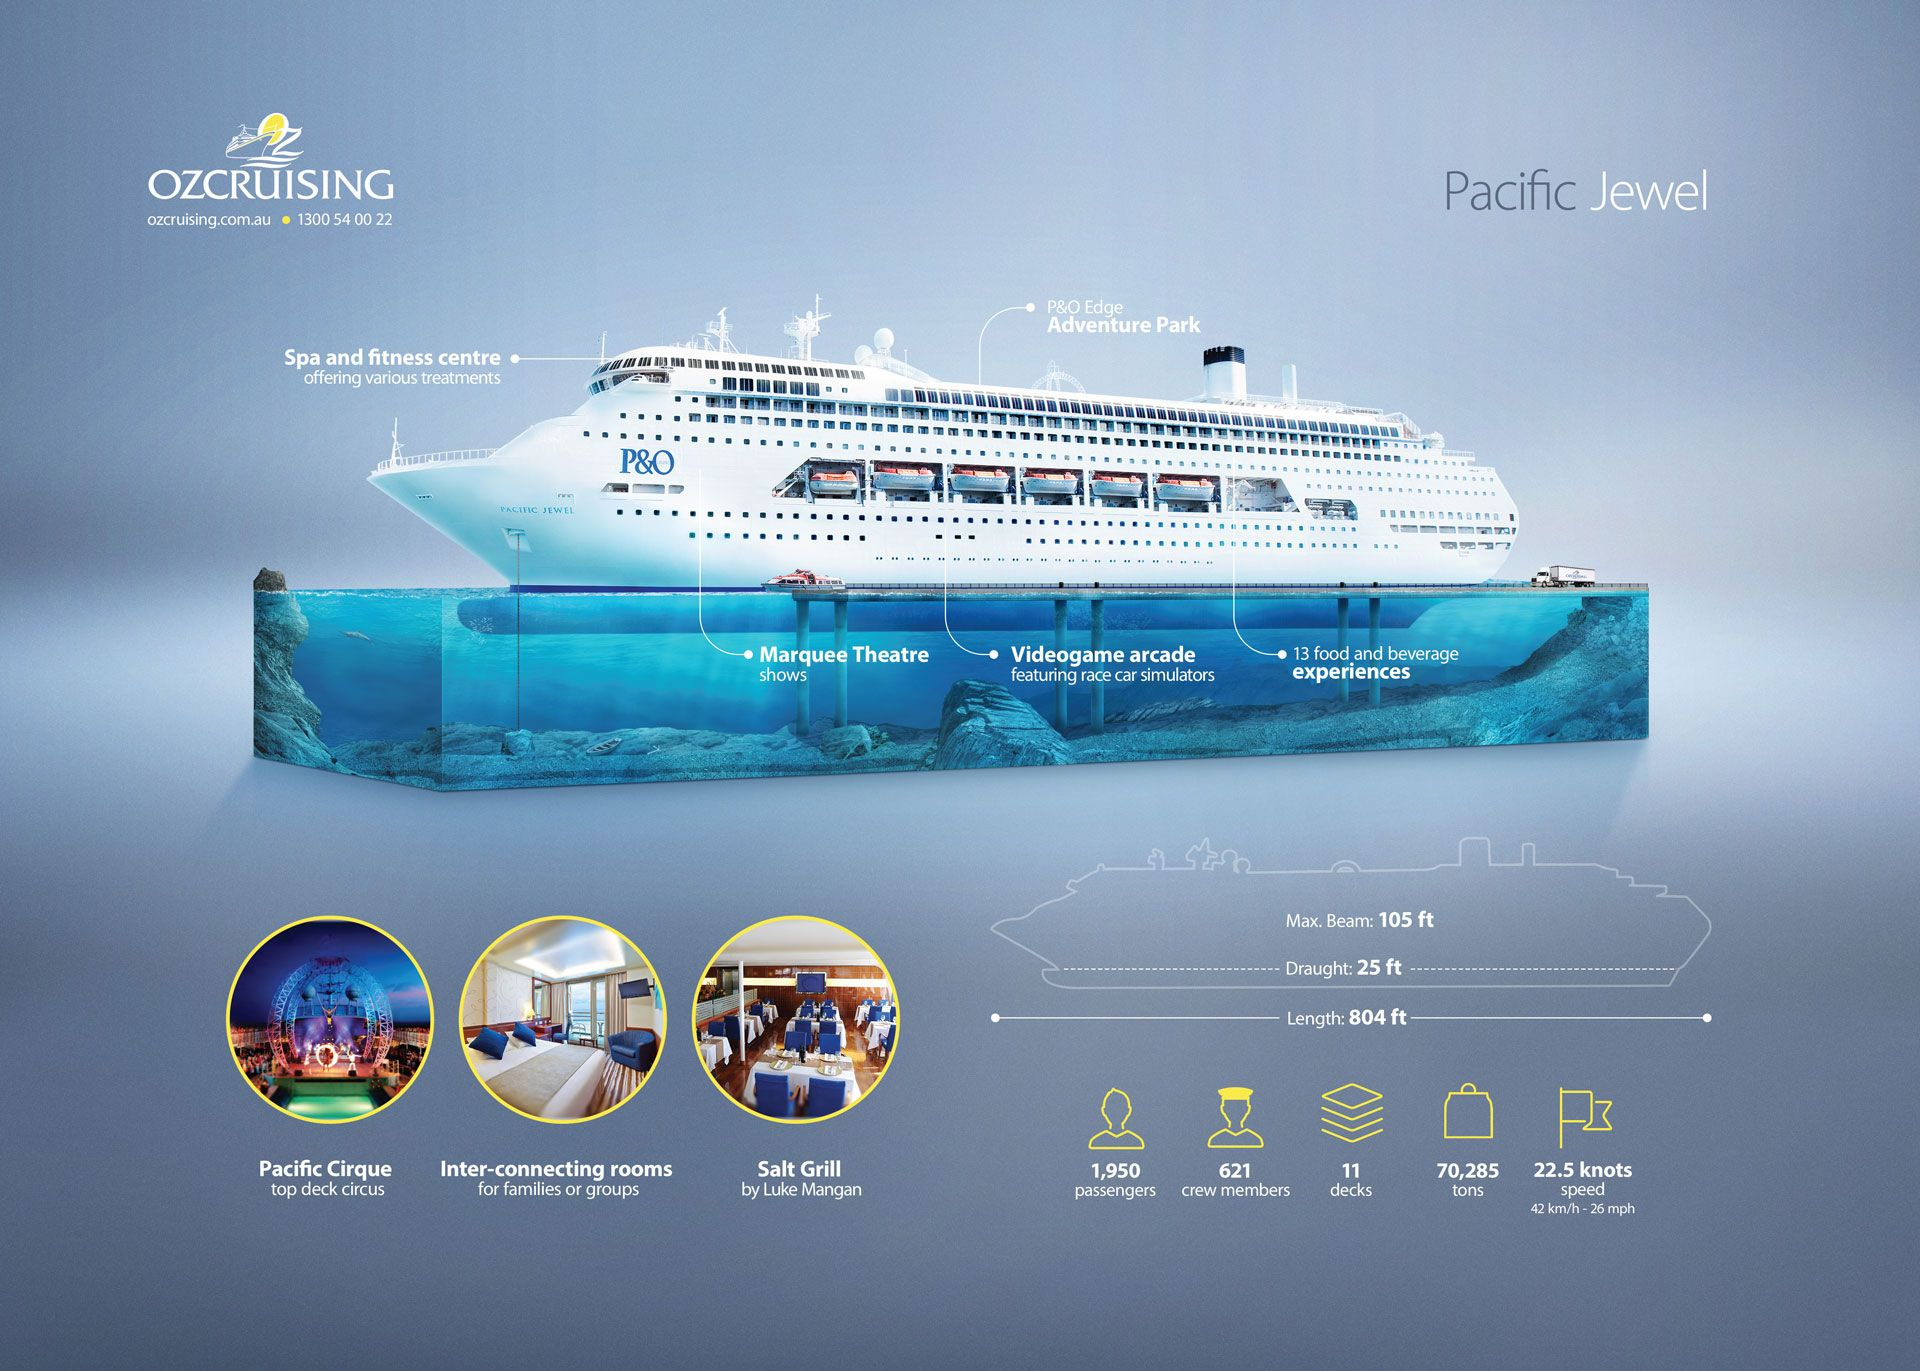 Pacific Jewel Cruise Ship Infographic Ads Pinterest Cruise - Find cruises